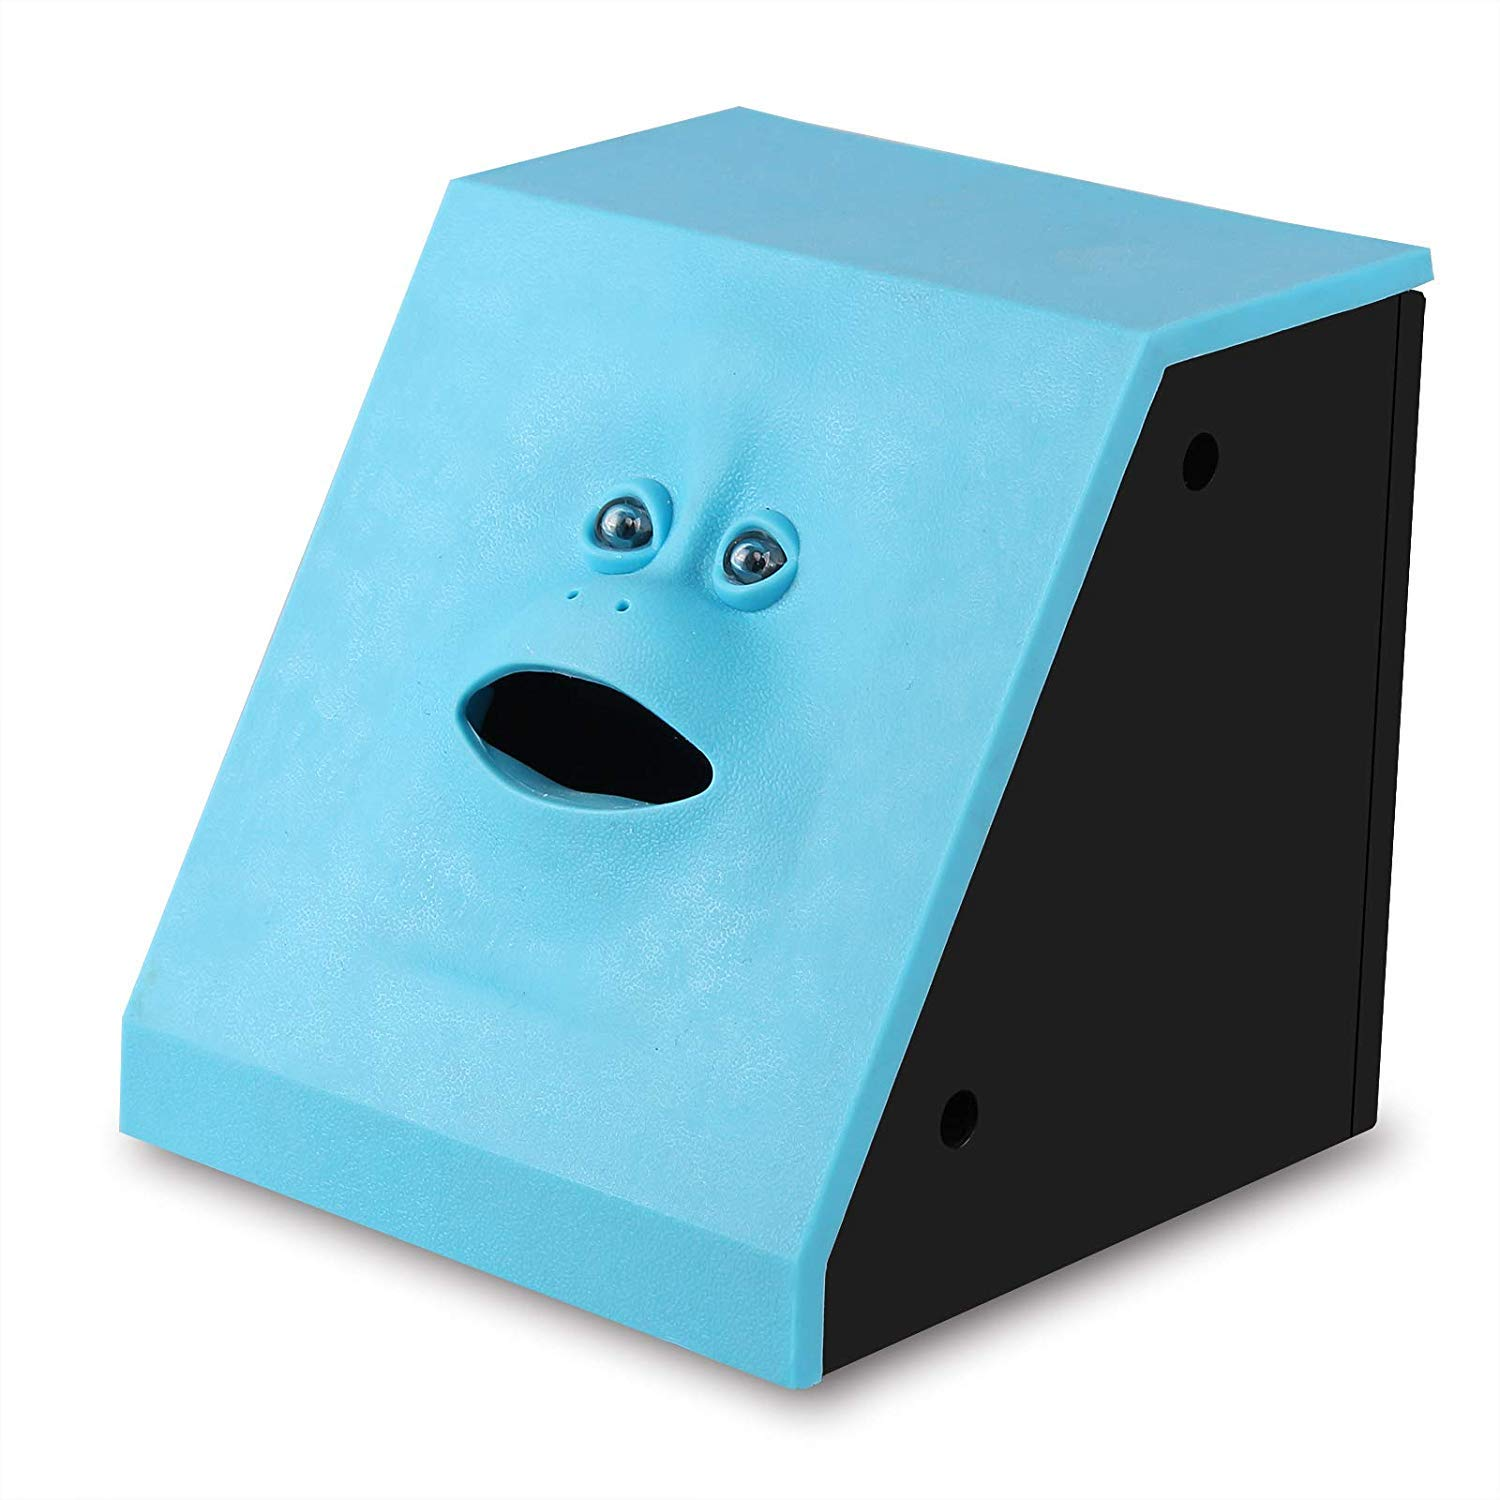 Jubapoz Coin Bank Money Eating Coin Bank Money Wrappers Battery Powered Face Monkey Piggy Coin Banks (Blue) by Jubapoz